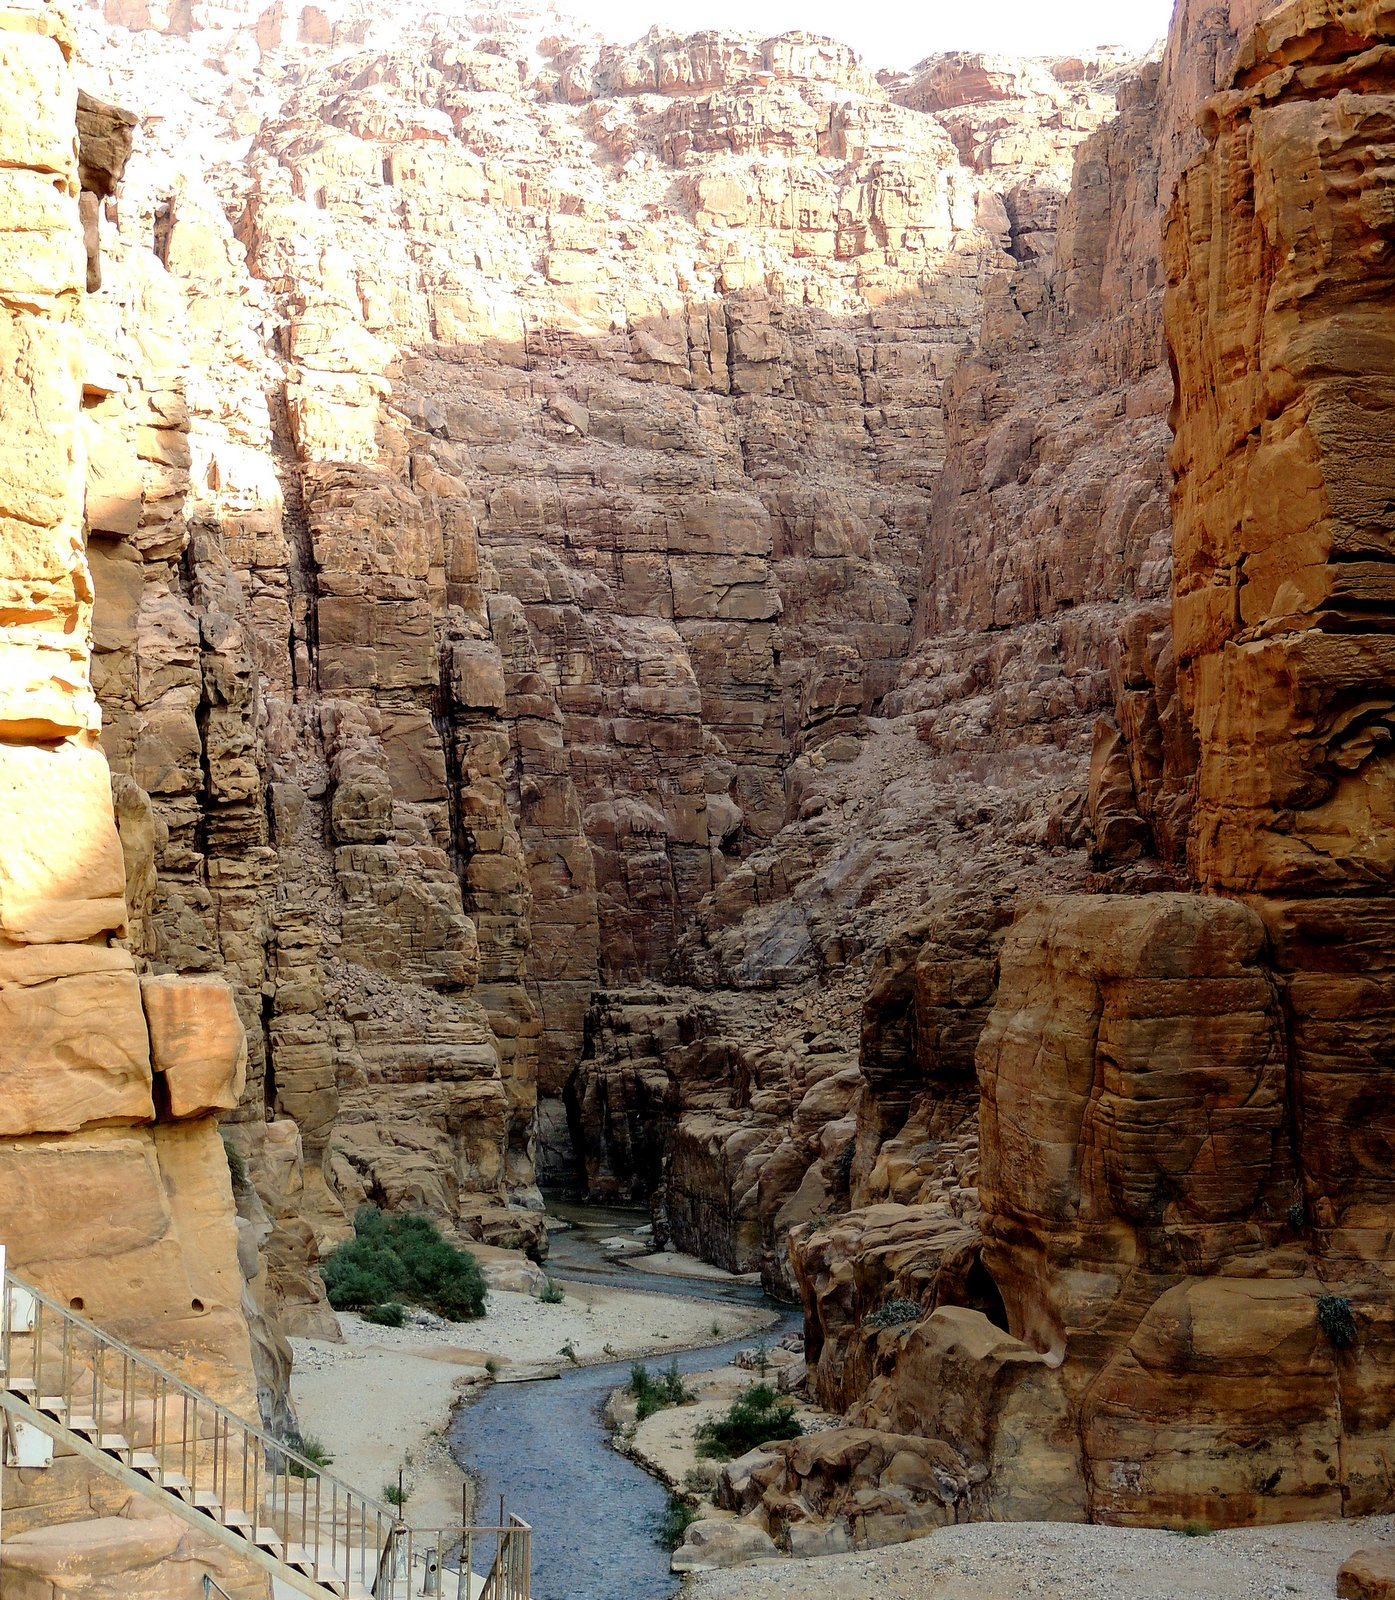 Schlucht des Mujib Rivers in Jordanien